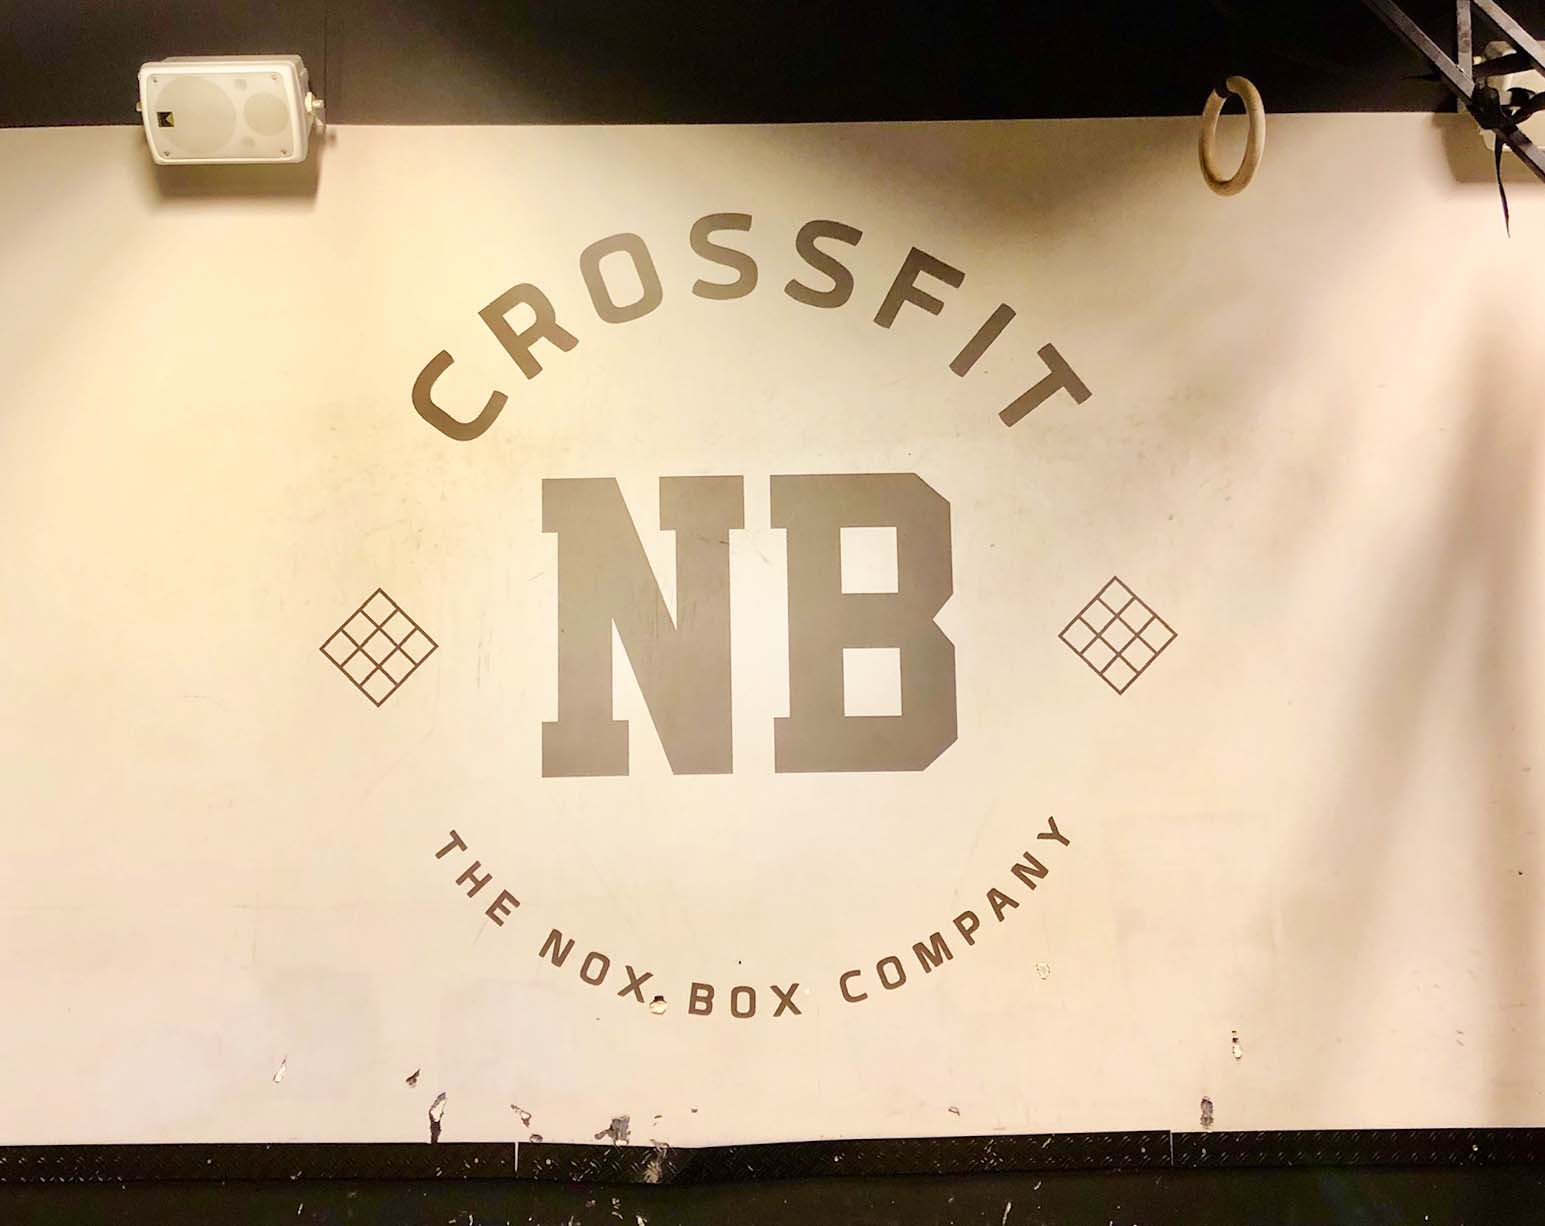 Nox Box Crossfit